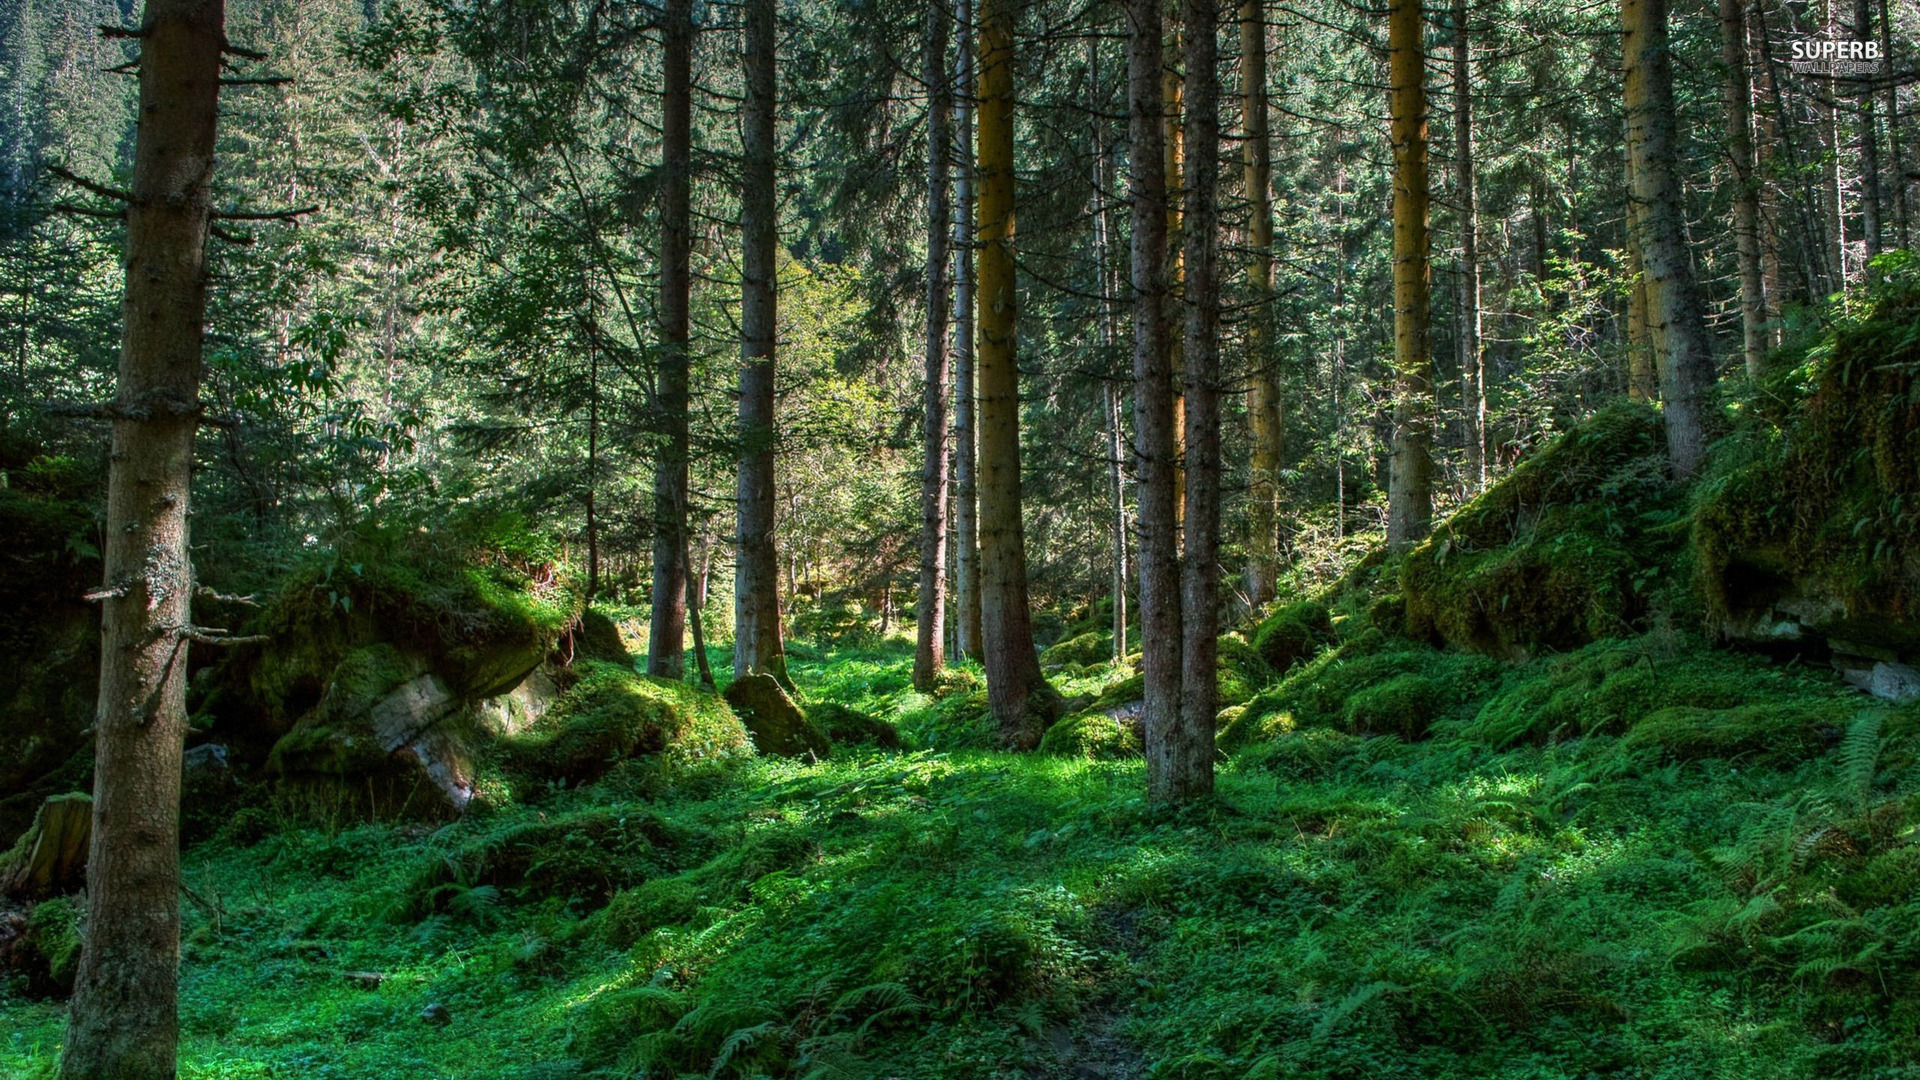 Spring forest wallpaper 1920x1080